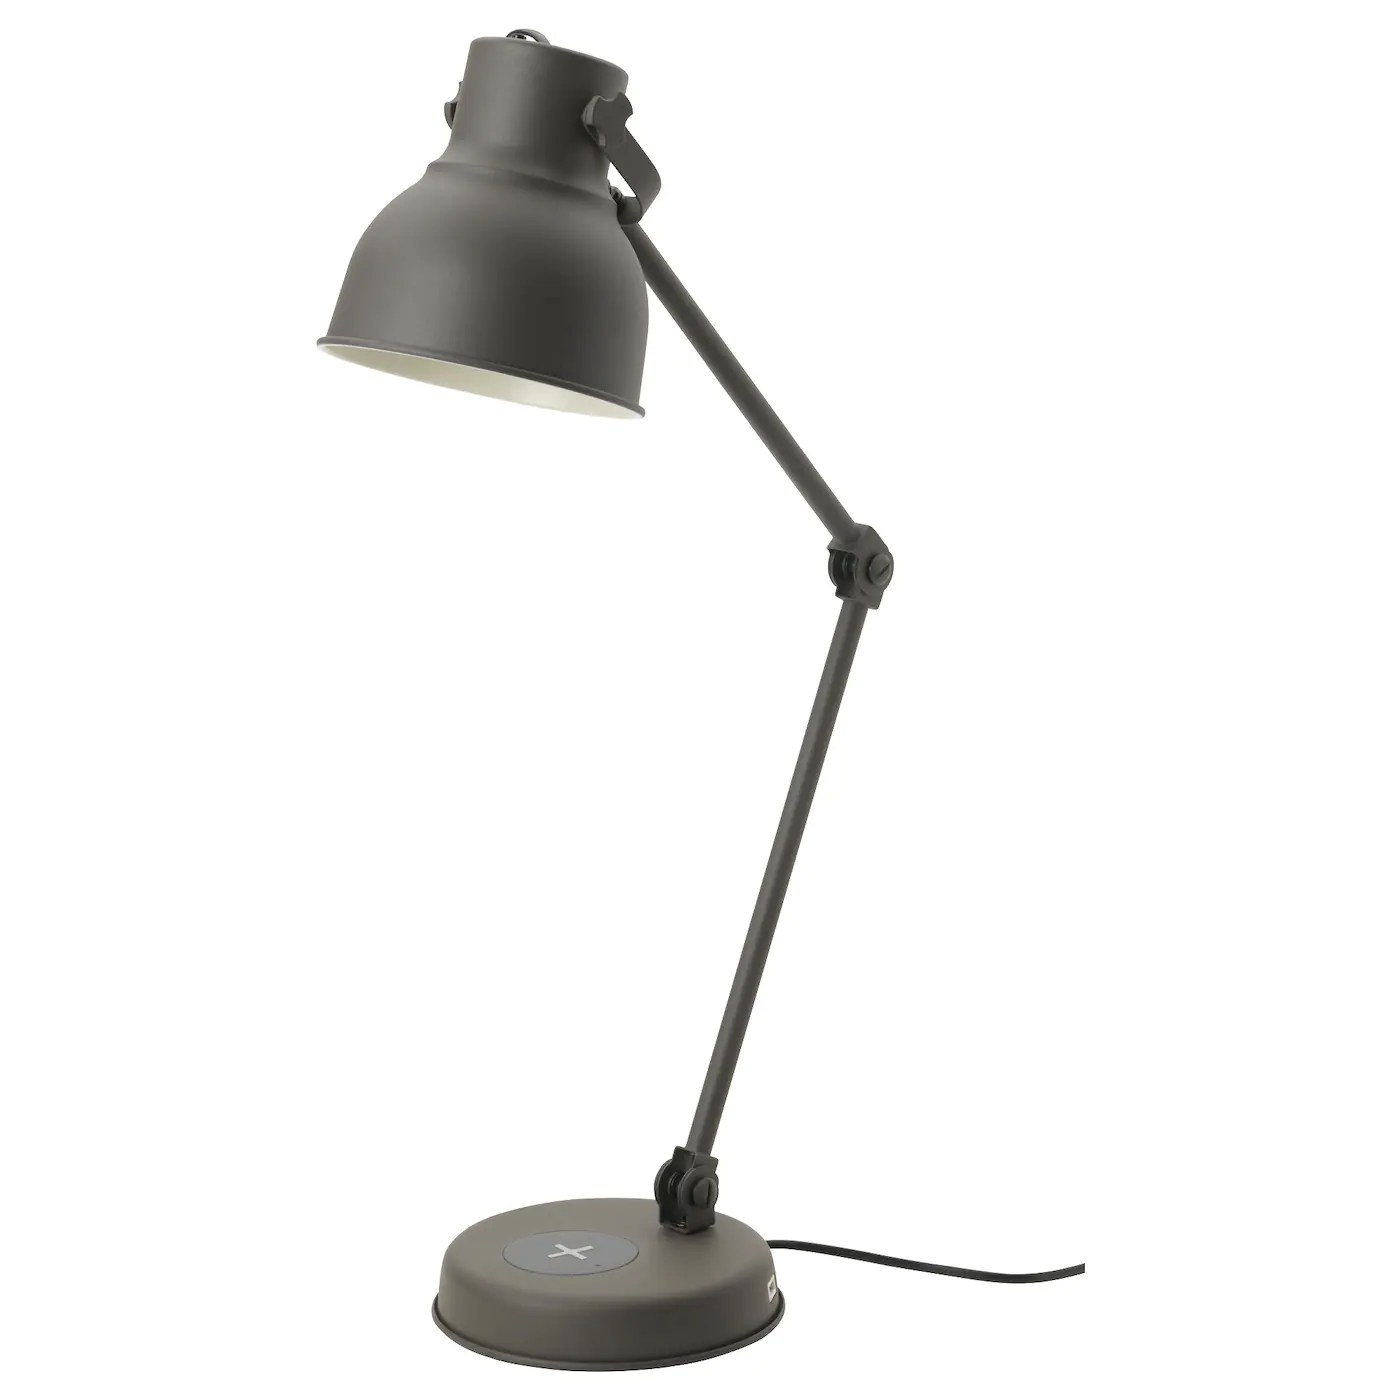 Hektar Floor Lamp Hektar Work Lamp With Wireless Charging Dark Grey - Ikea